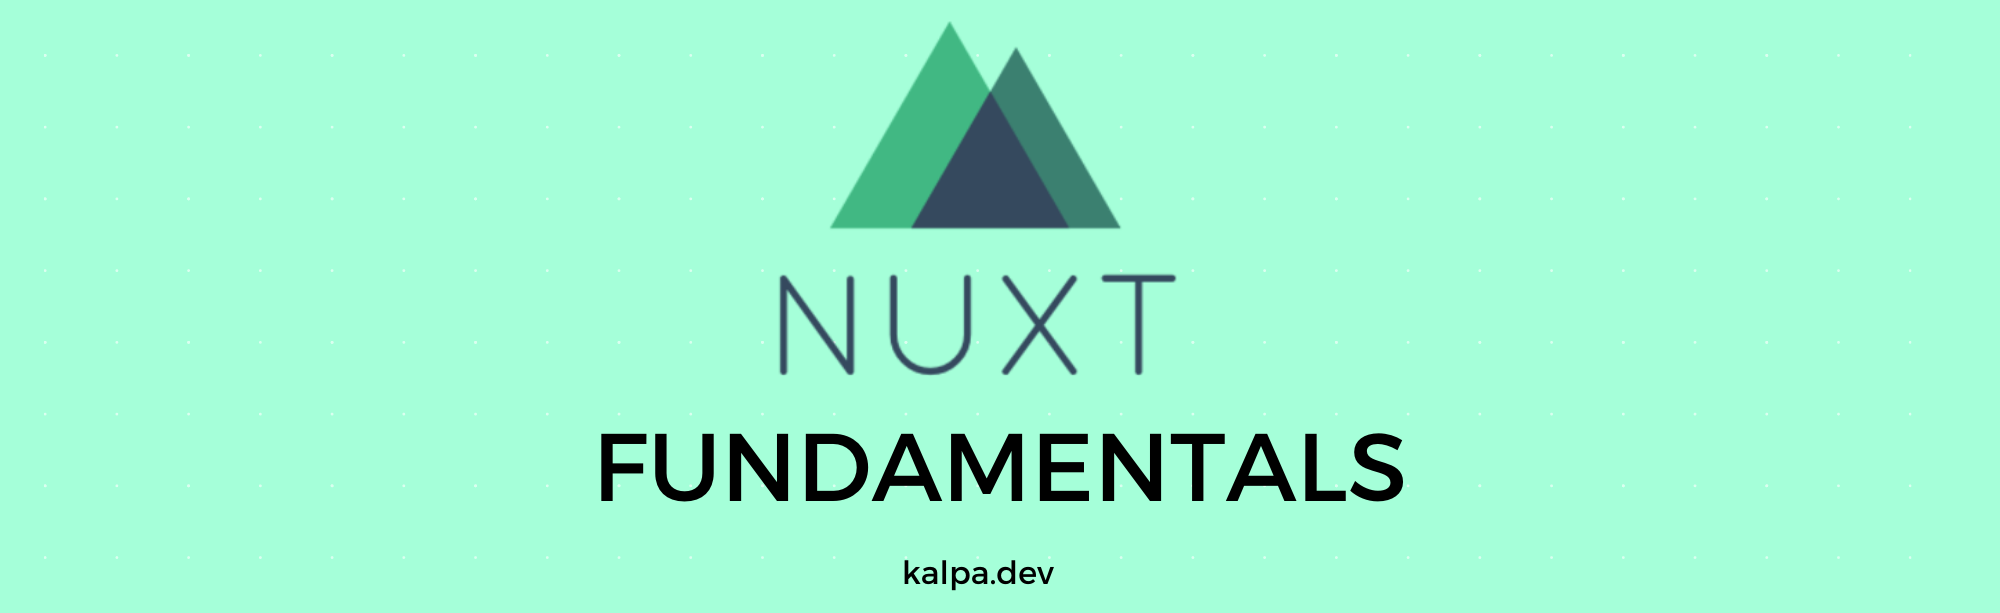 Nuxtjs Fundamentals: Introduction